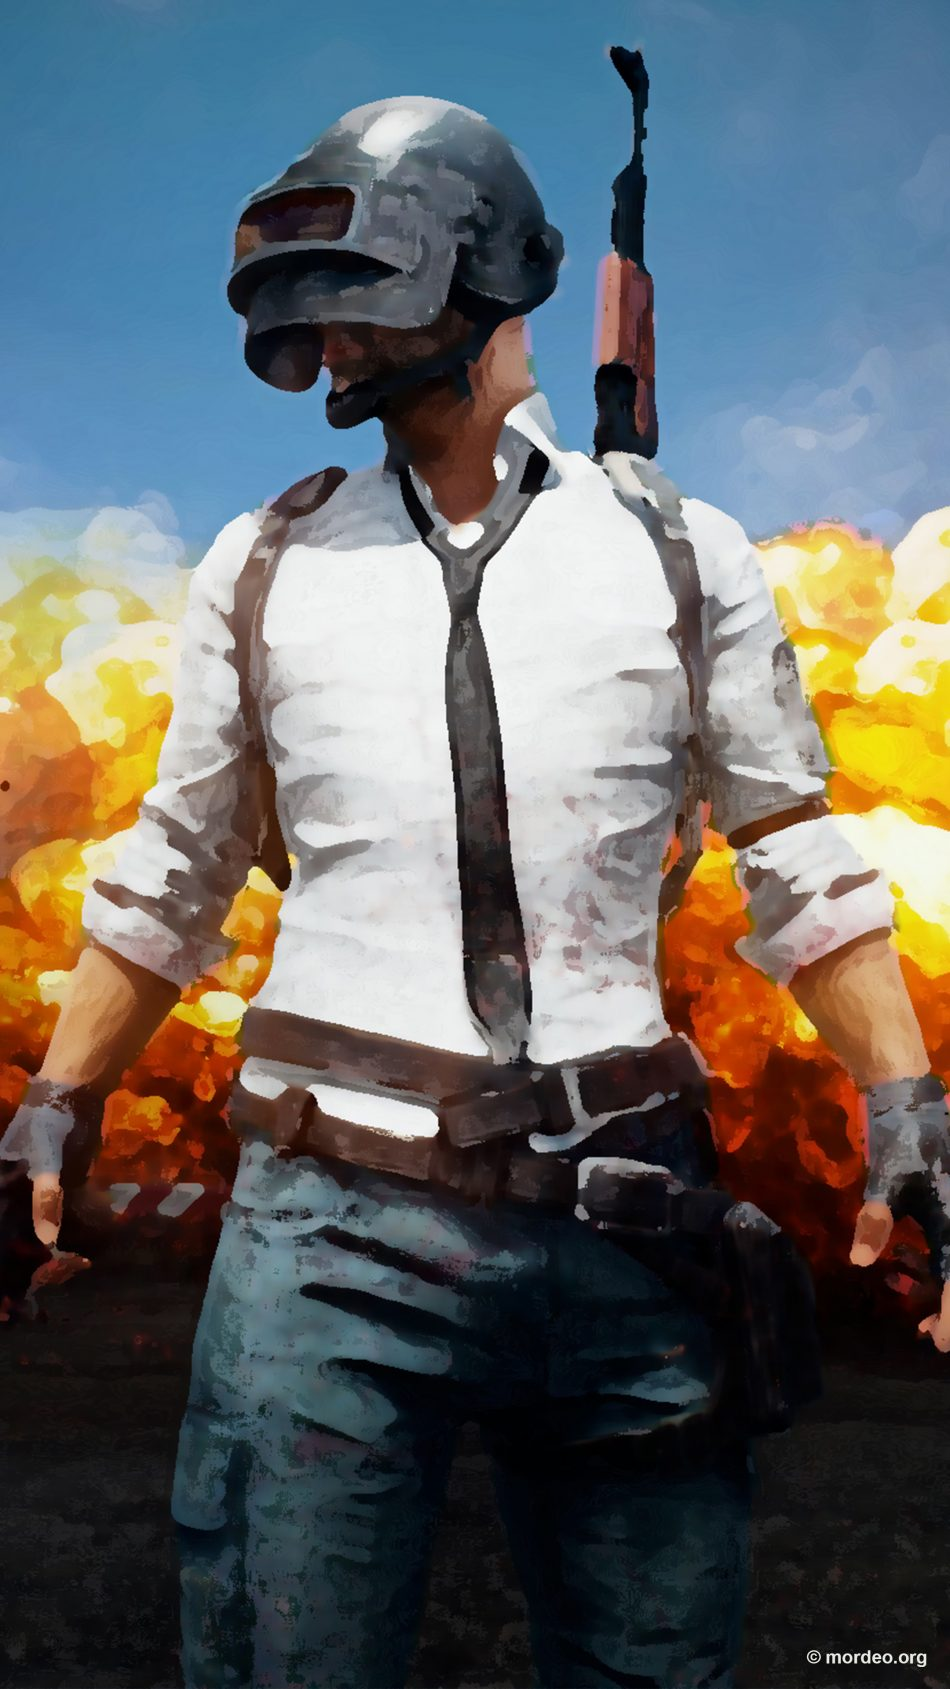 Download Pubg Prisma Artwork Playerunknown S Battlegrounds Free Pure